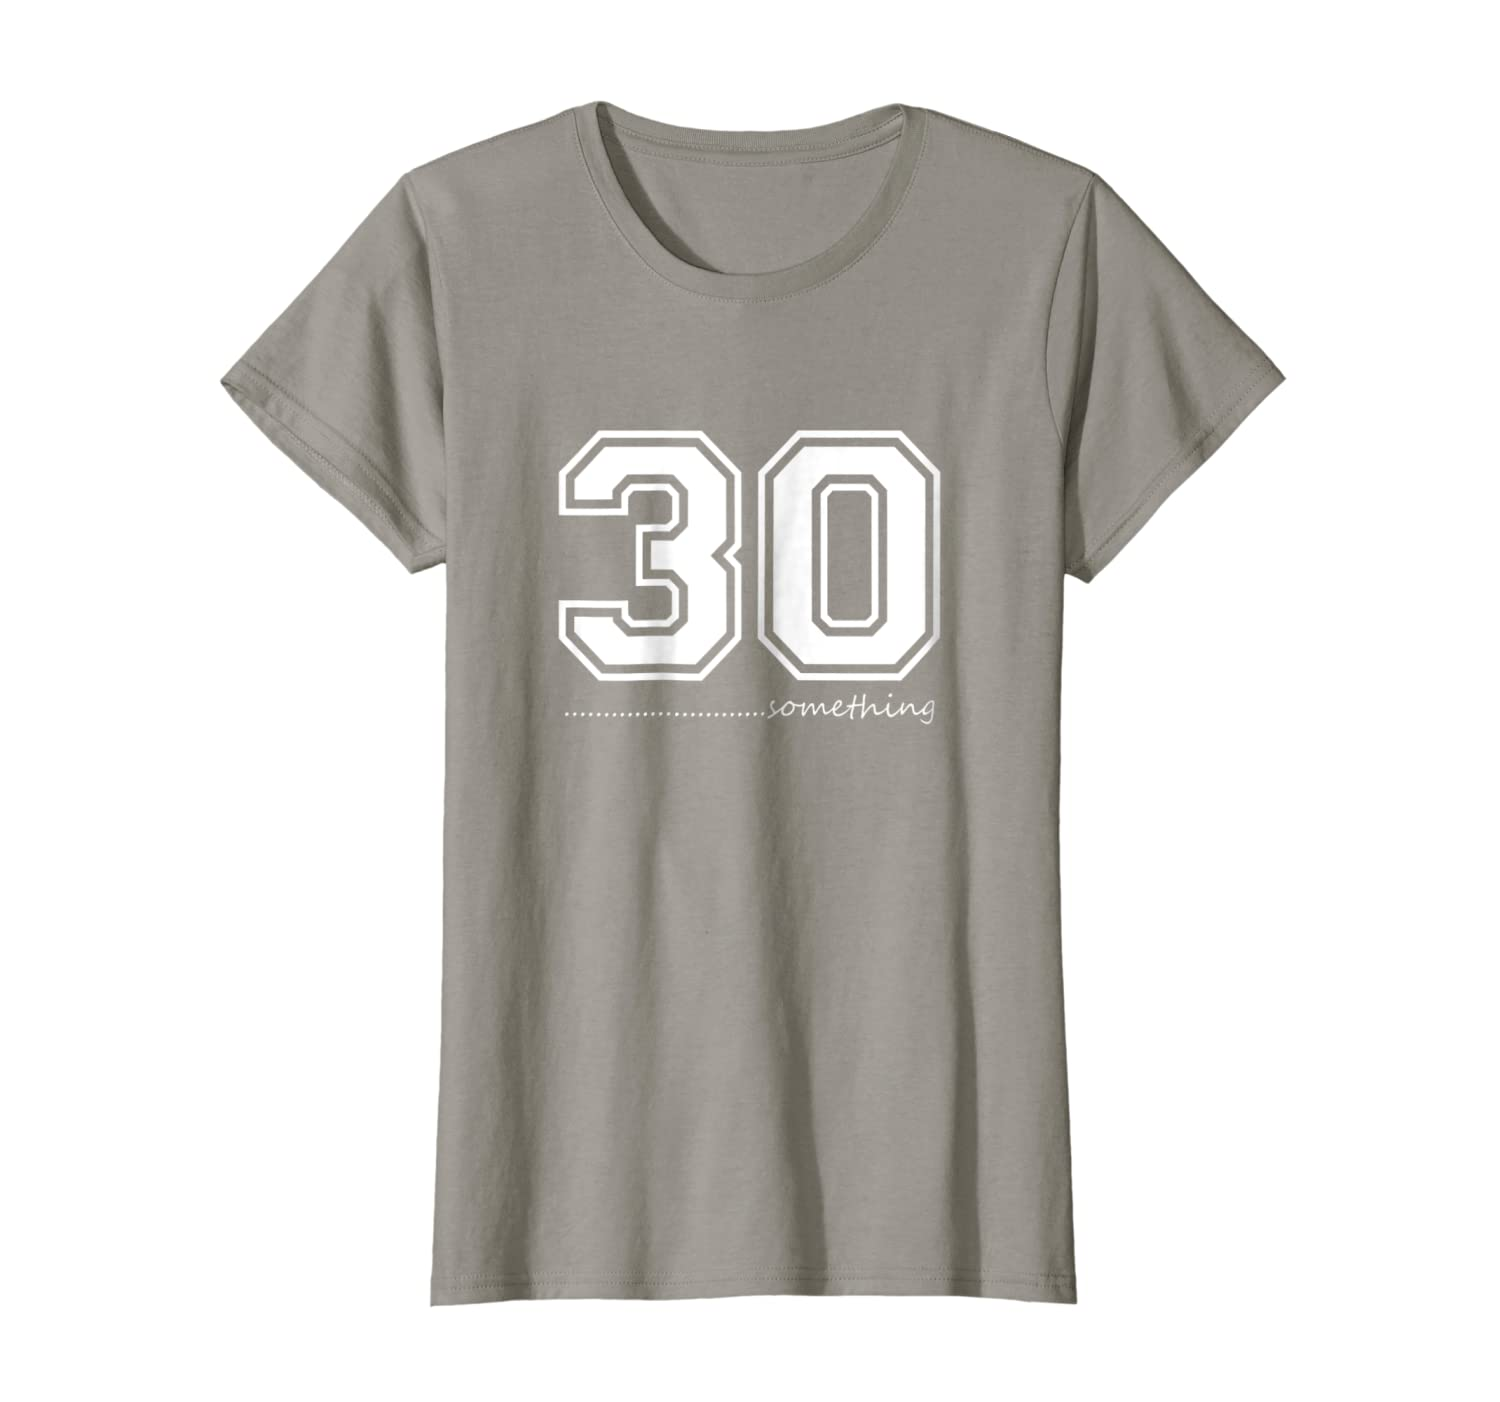 a158e809 Amazon.com: 30 Something T-shirt 30s years old Sport Jersey Style tshirt:  Clothing